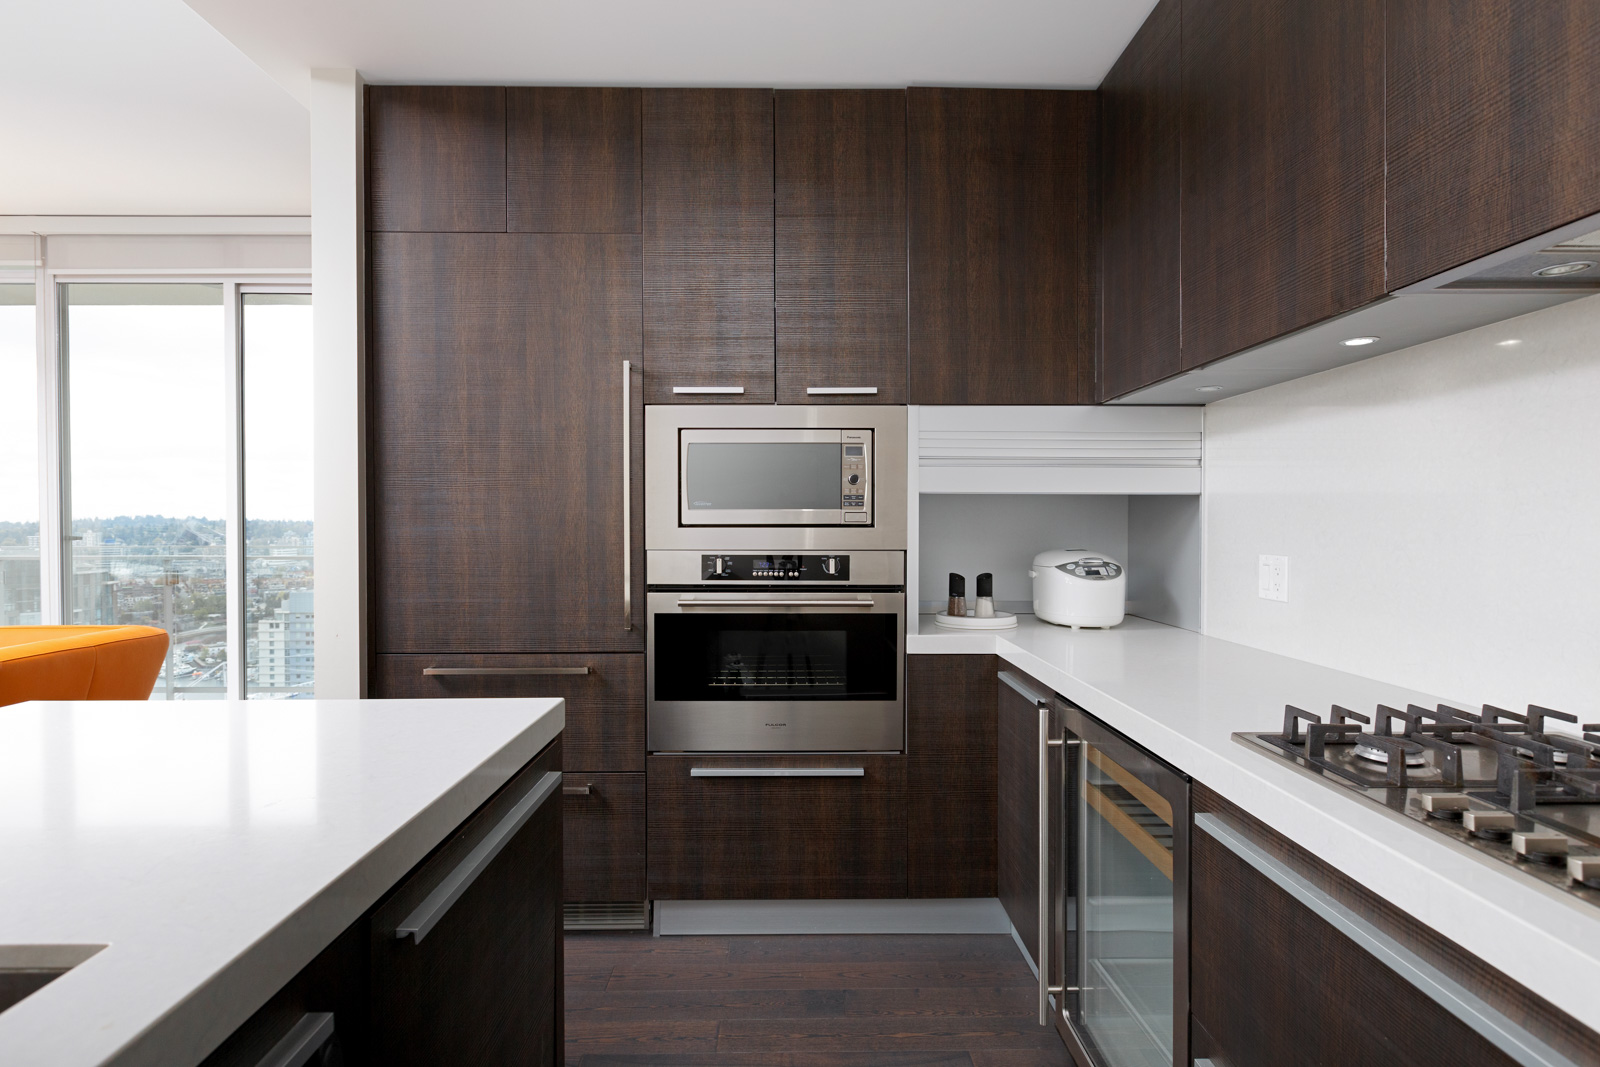 Kitchen with stainless steel appliances and dark cabinetry in Vancouver rental condo.